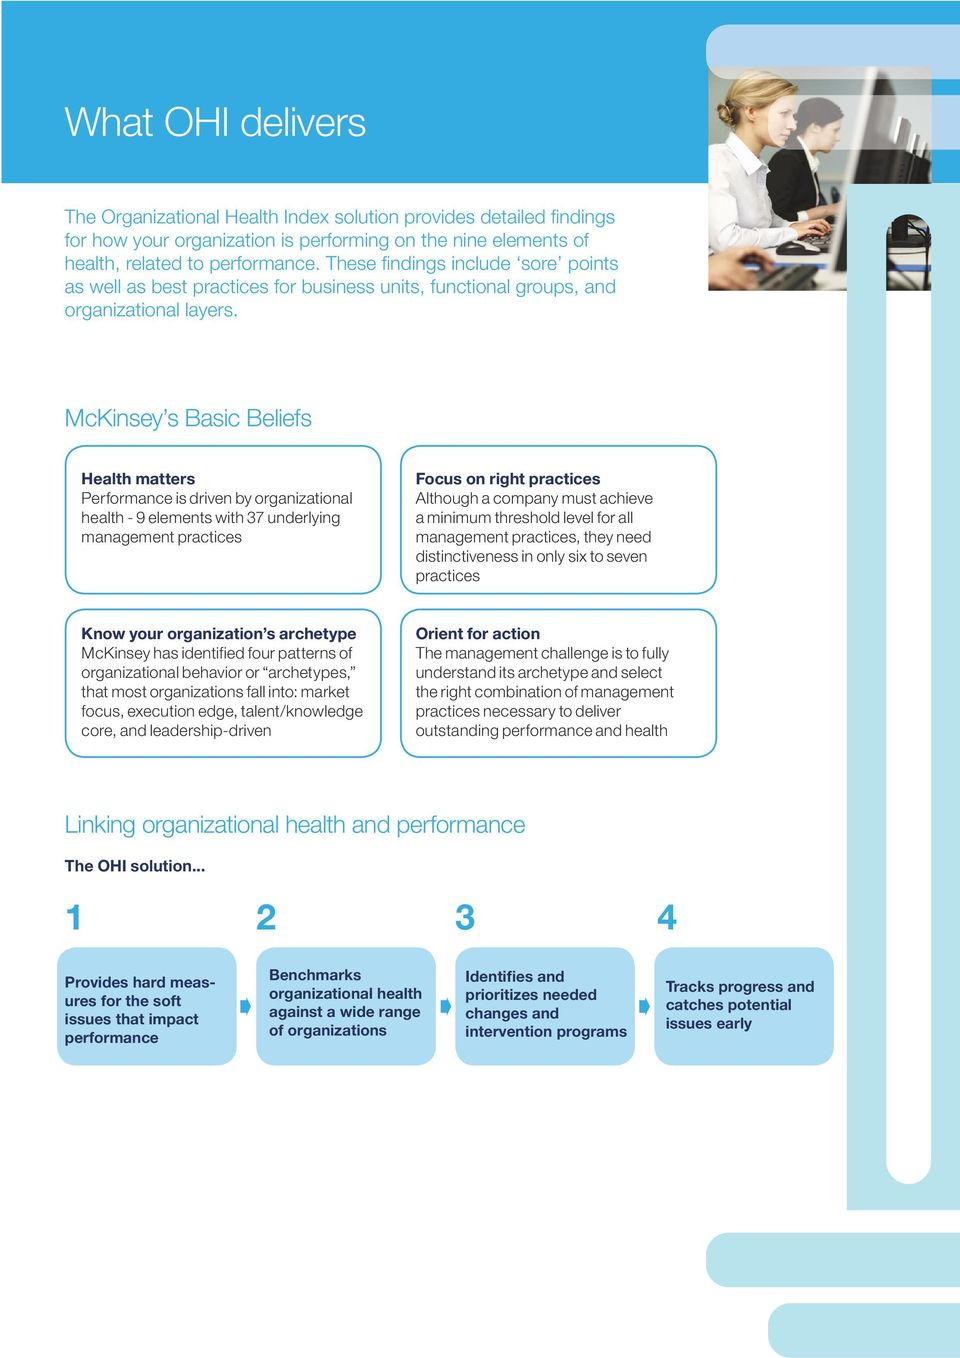 McKinsey s Basic Beliefs Health matters Performance is driven by organizational health - 9 elements with 37 underlying management practices Focus on right practices Although a company must achieve a